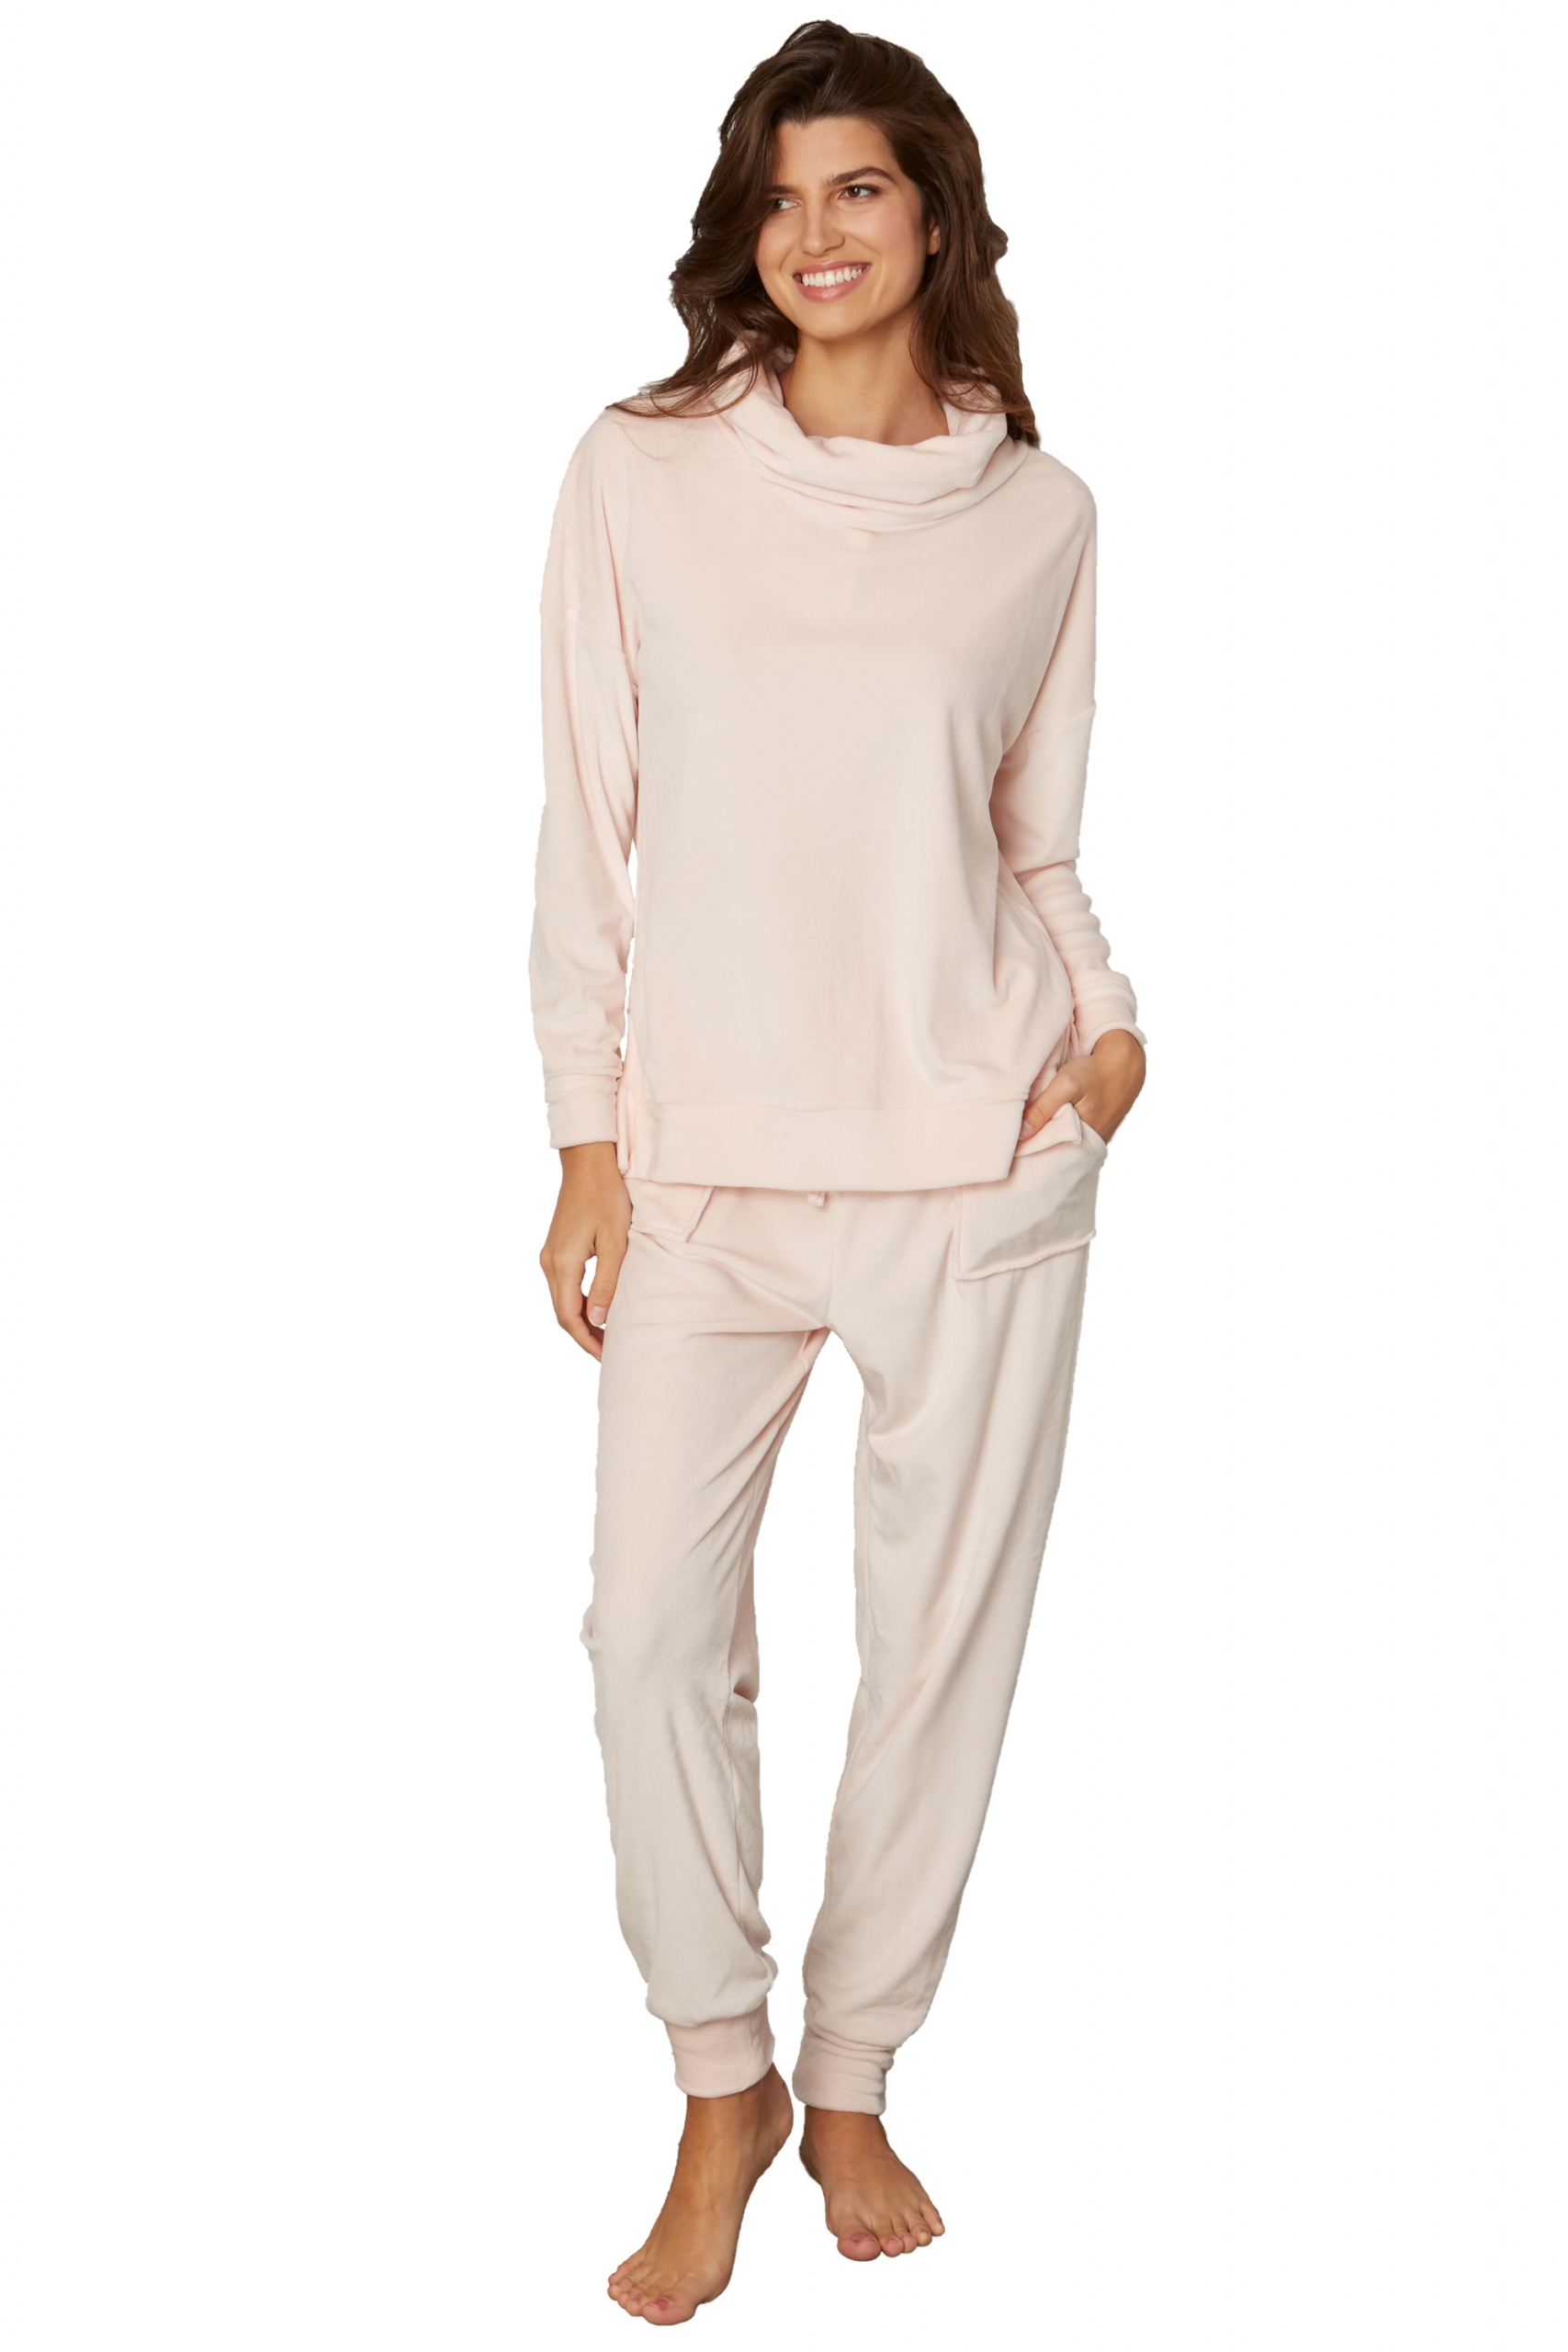 Kayanna Cowl Neck Pajama Lounger